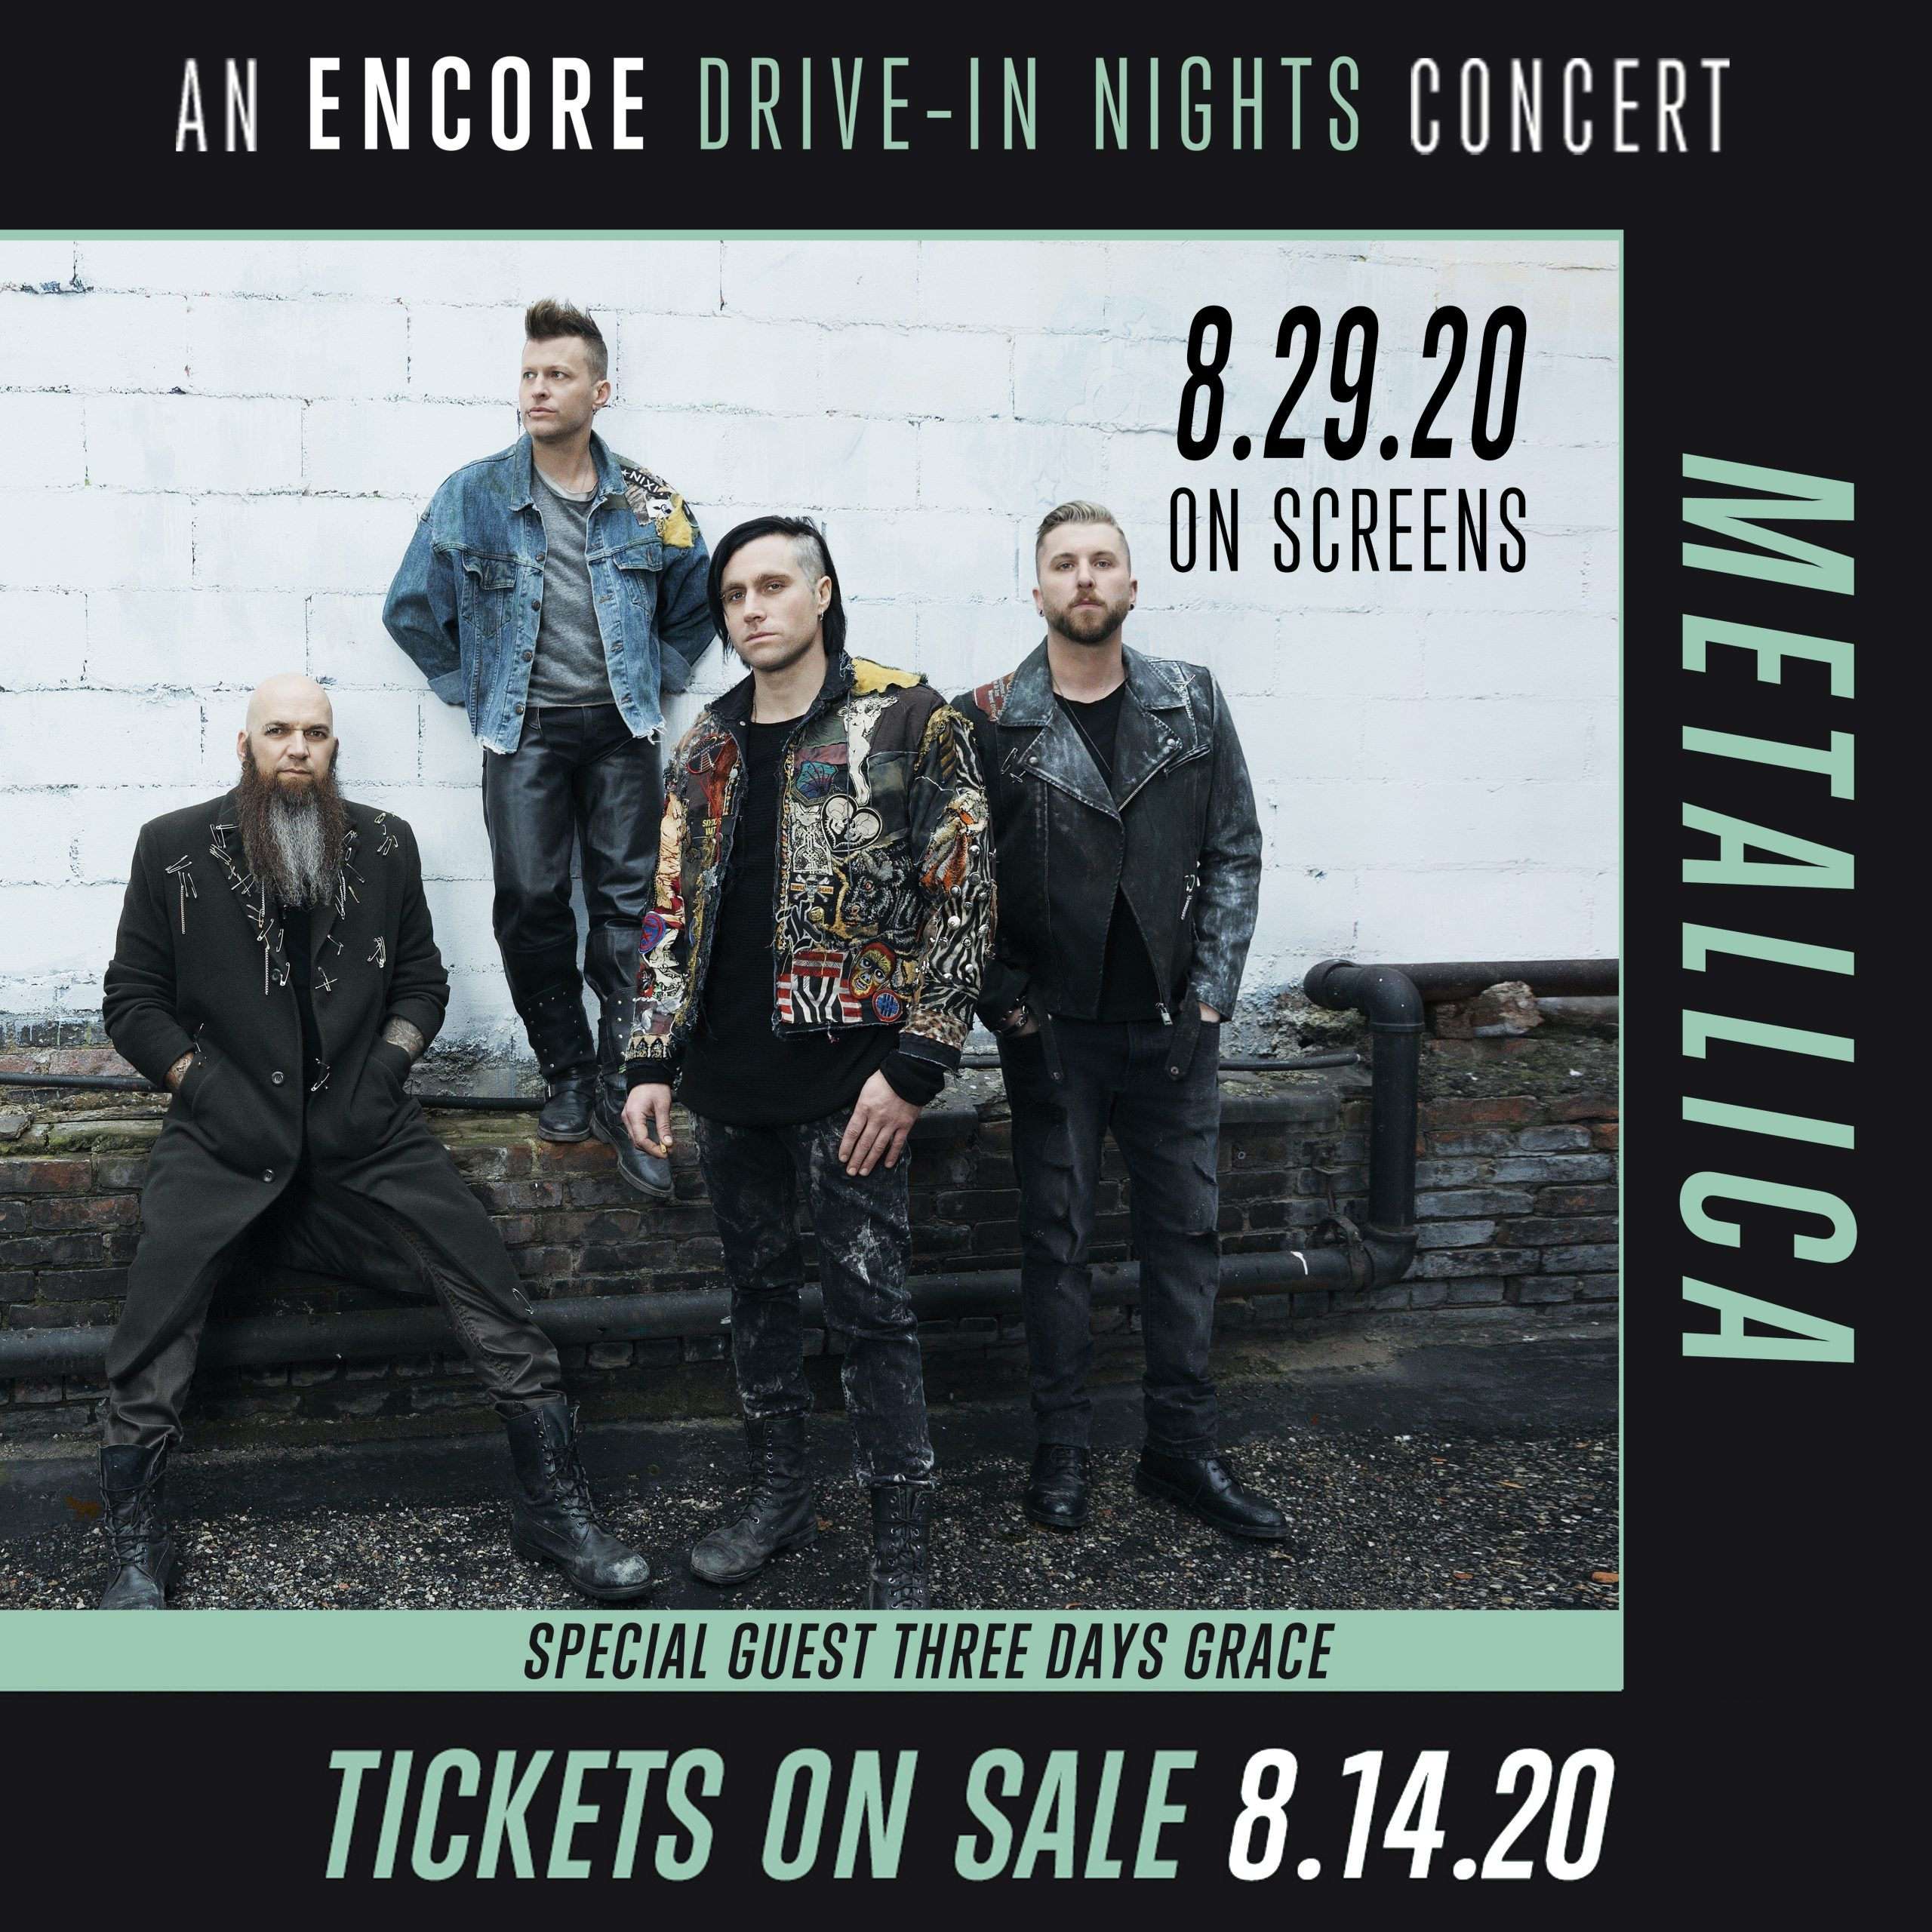 https://threedaysgrace.com/2020/08/10/3dg-drive-in-show-with-metallica-august-29/